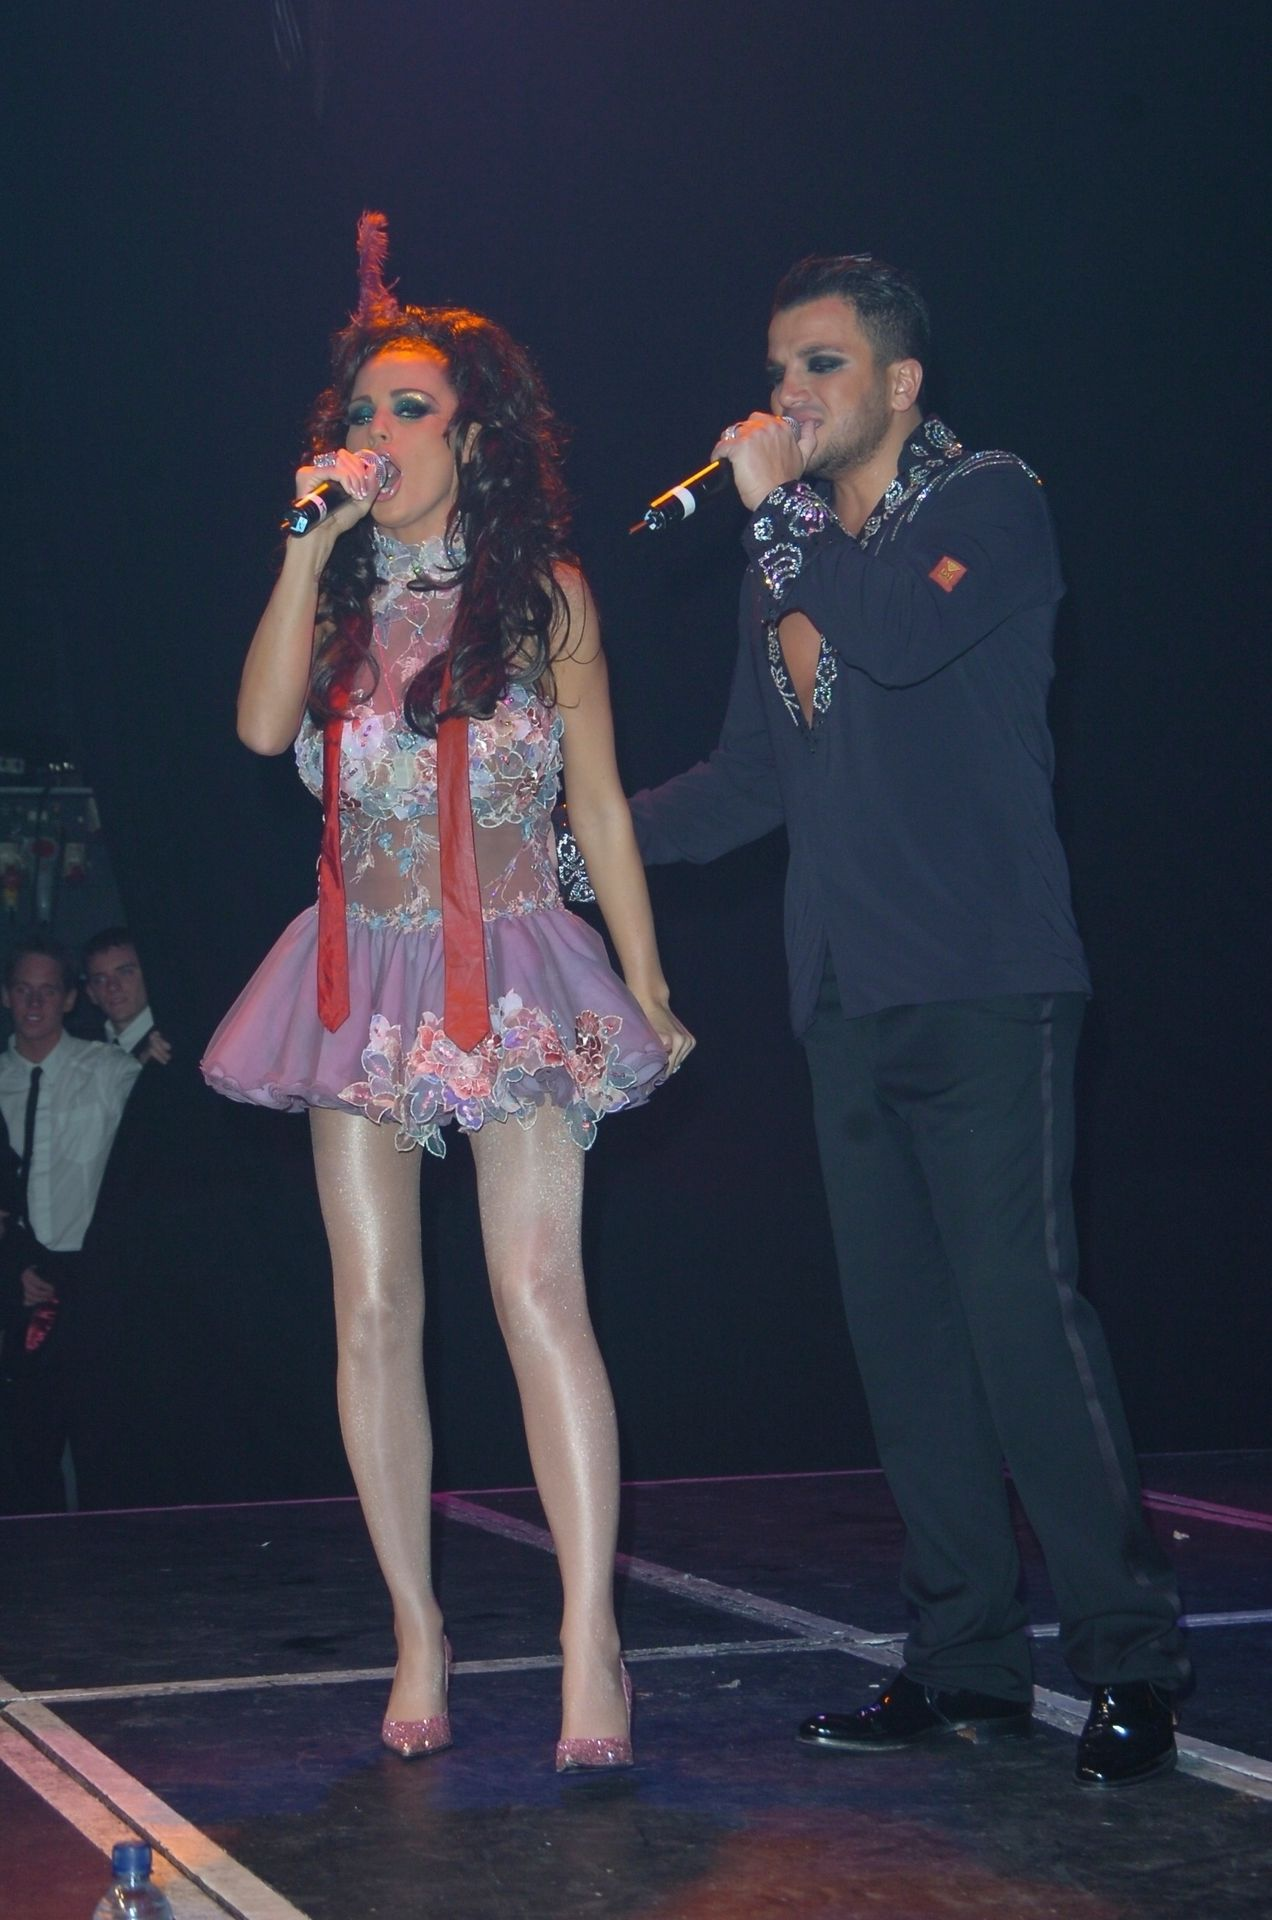 Katie Price & Peter Andre Perform At Gay Astoria In London 0019